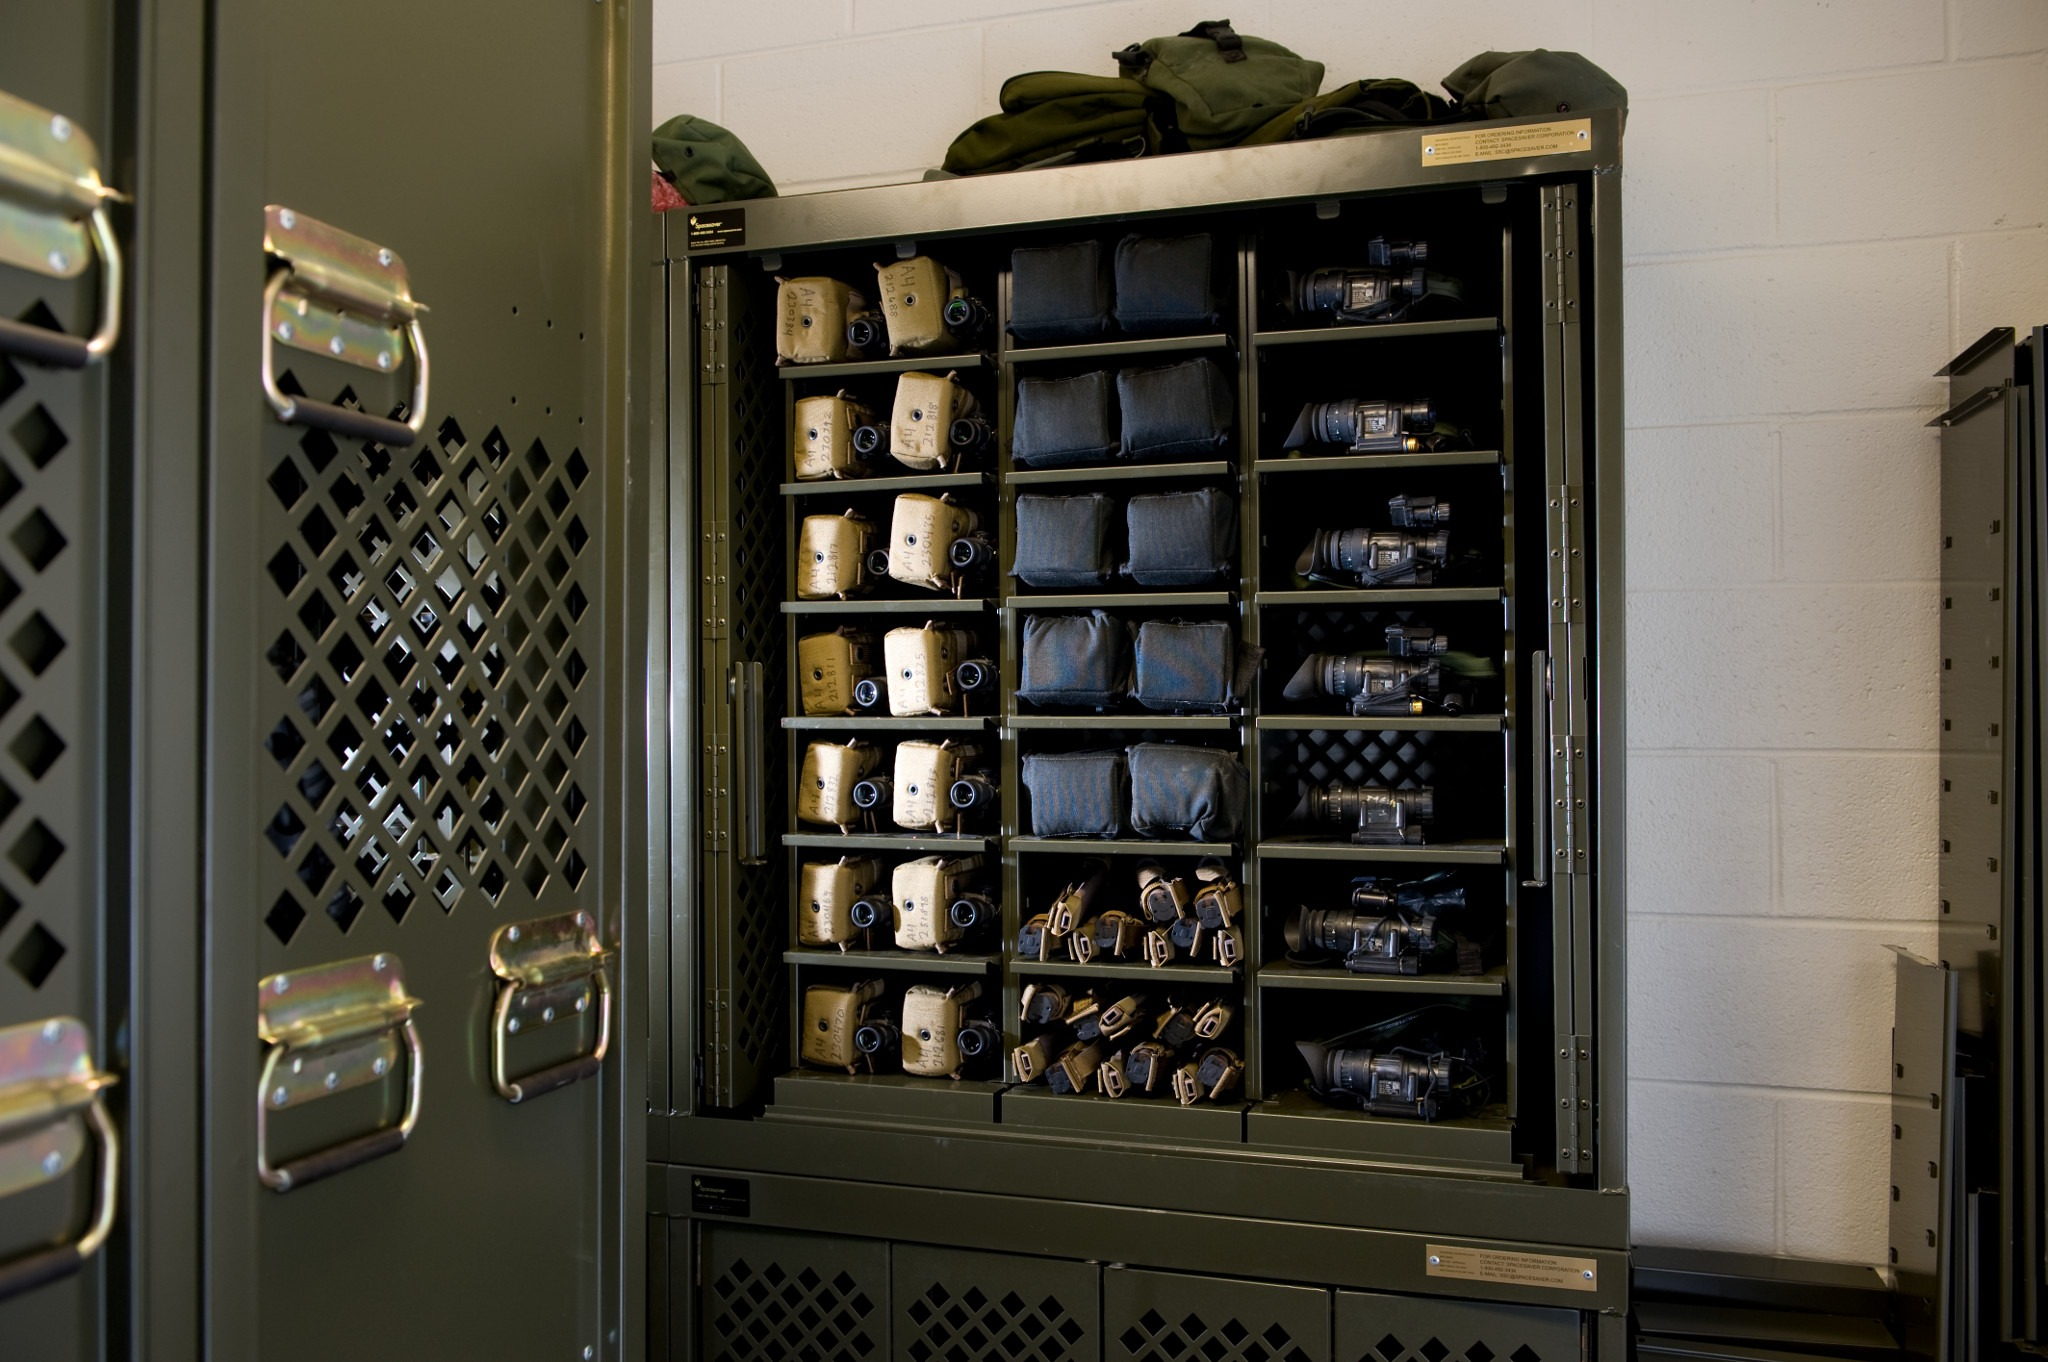 Military Storage - compact mobile shelving to define the room space